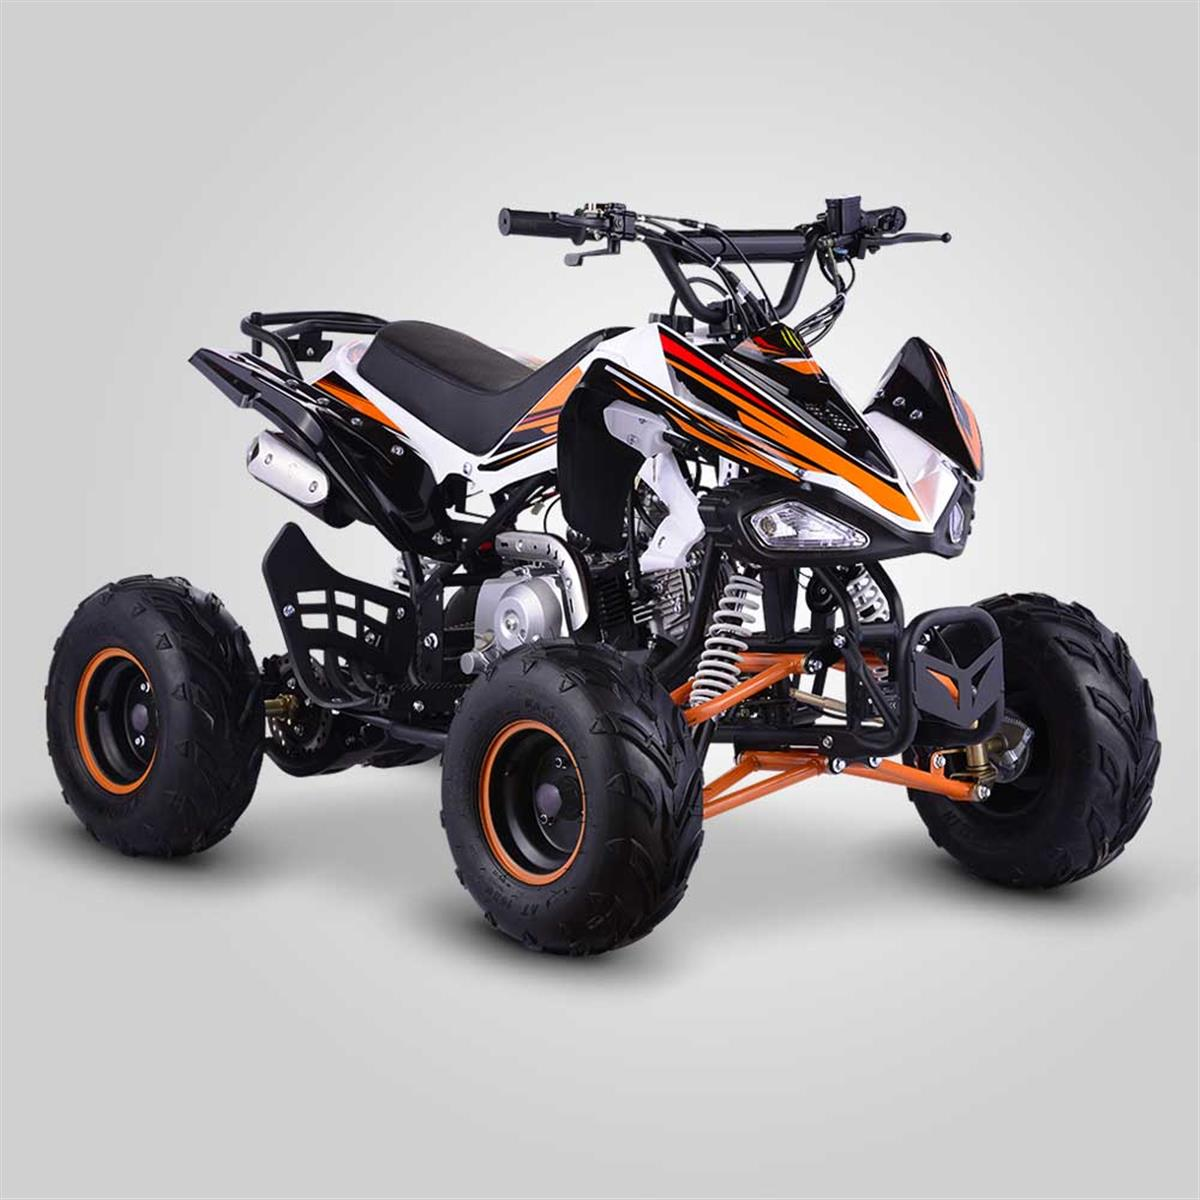 quad enfant 110cc orange pour enfants smallmx dirt bike pit bike quads minimoto. Black Bedroom Furniture Sets. Home Design Ideas